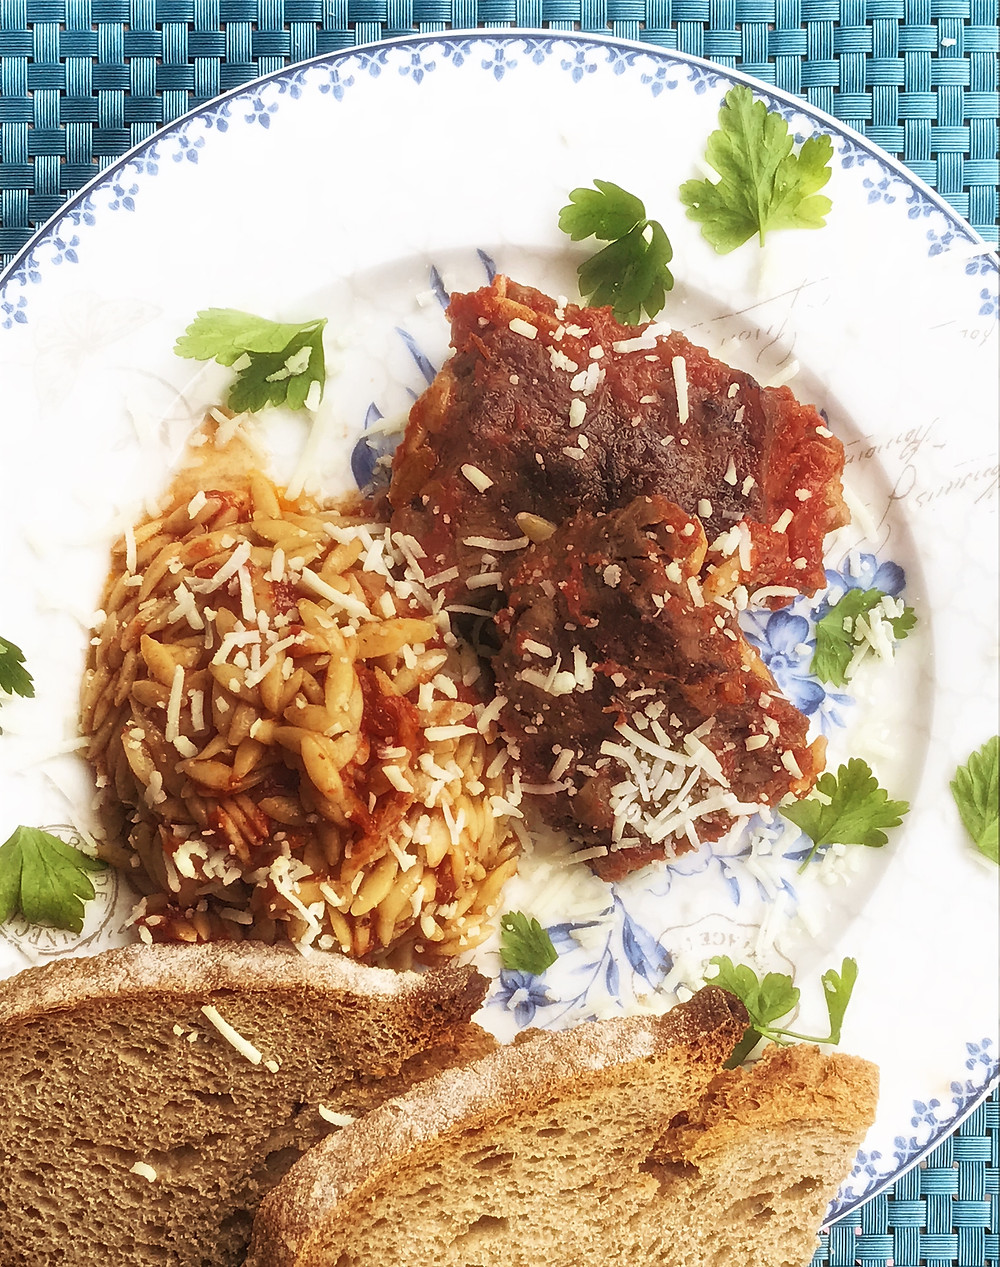 How to make oven baked beef and orzo casserole